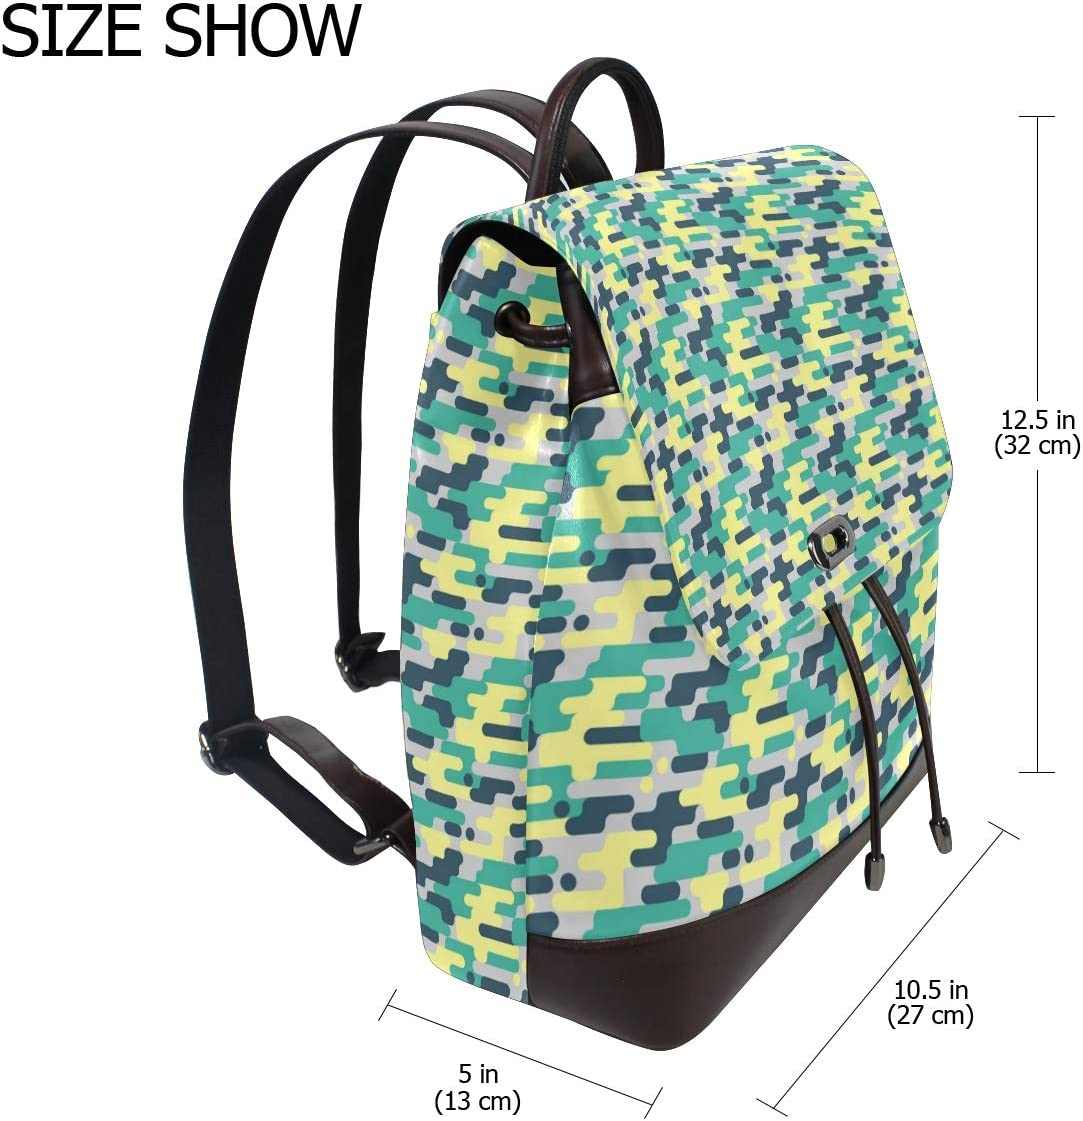 Unisex PU Leather Backpack Camo for Men Colorful Print Womens Casual Daypack Mens Travel Sports Bag Boys College Bookbag